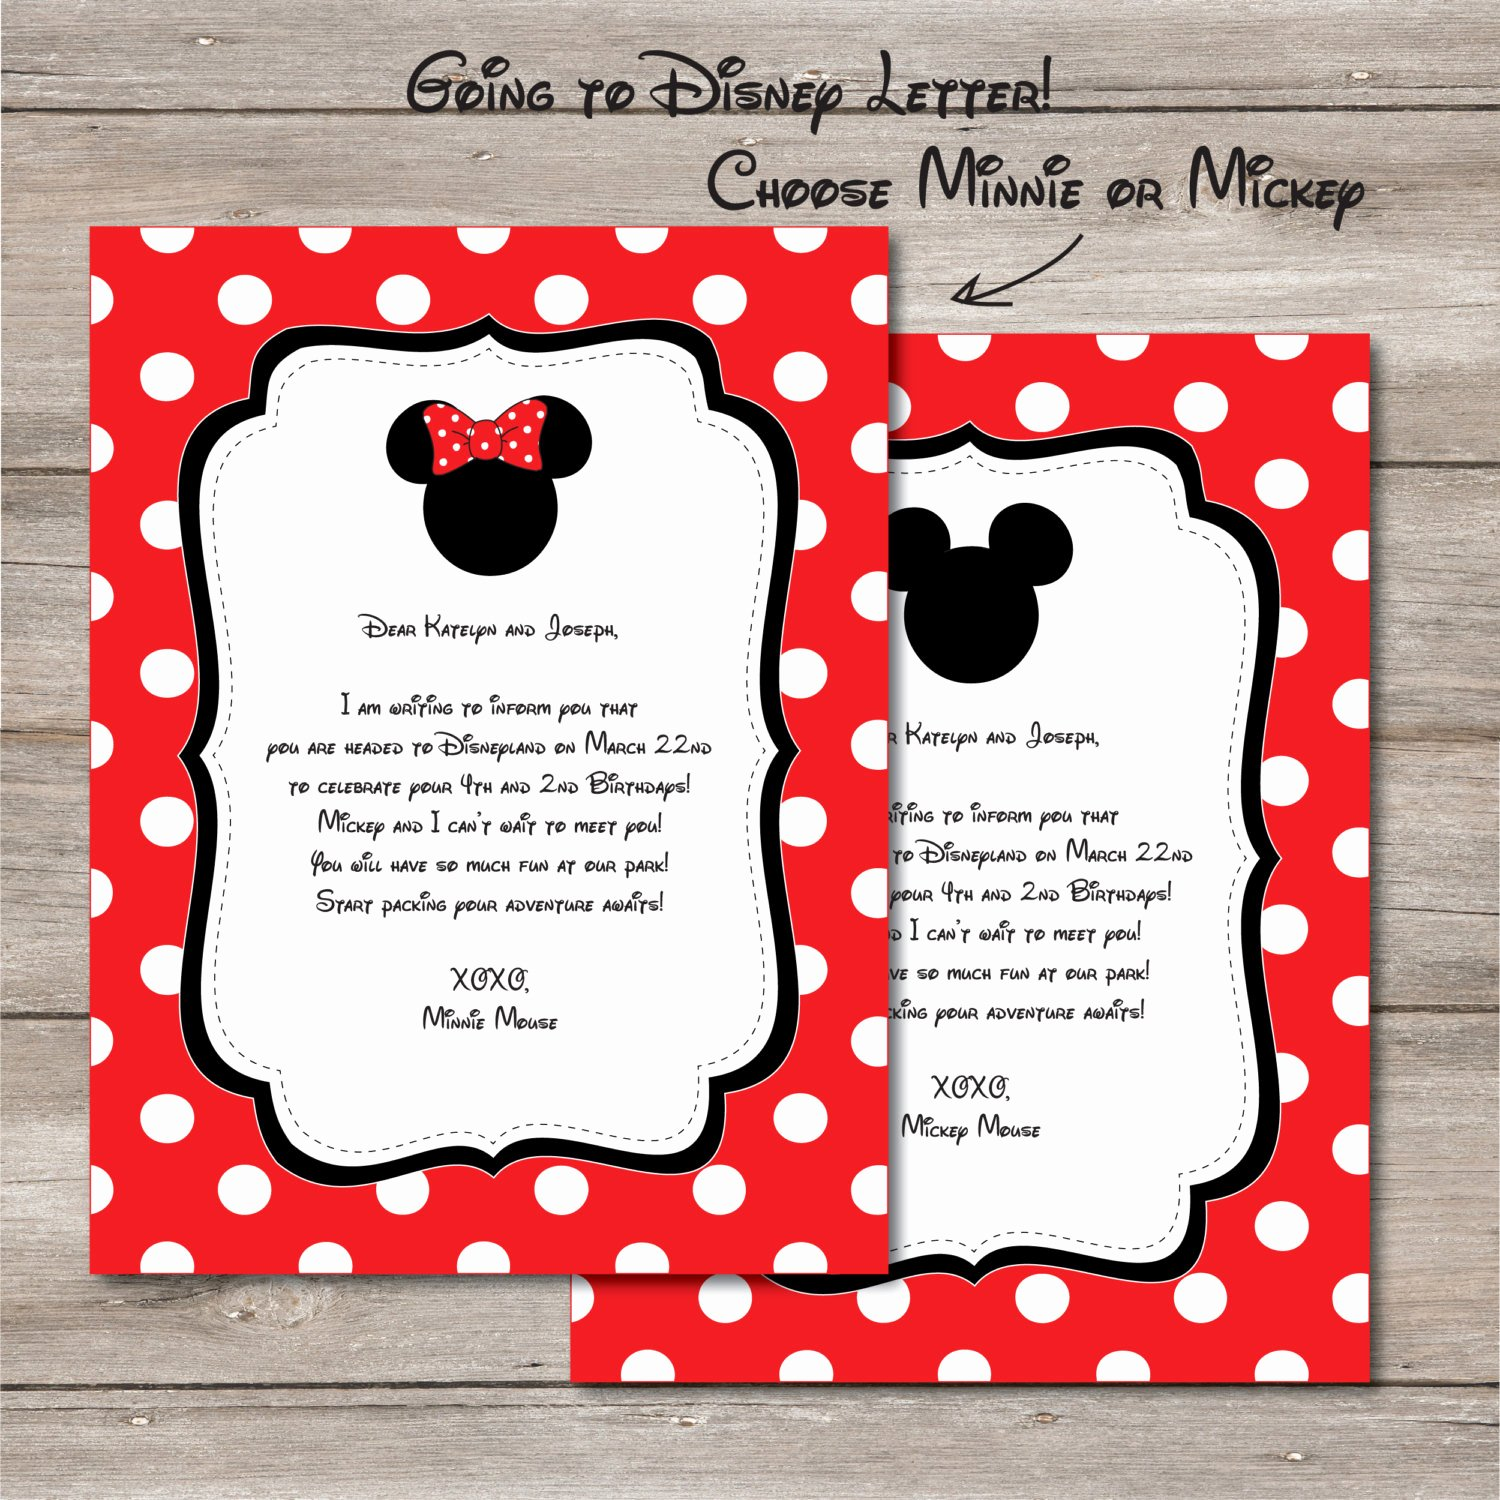 Disney Surprise Letter Template Awesome Disney Surprise Letter Template Il Fullxfull